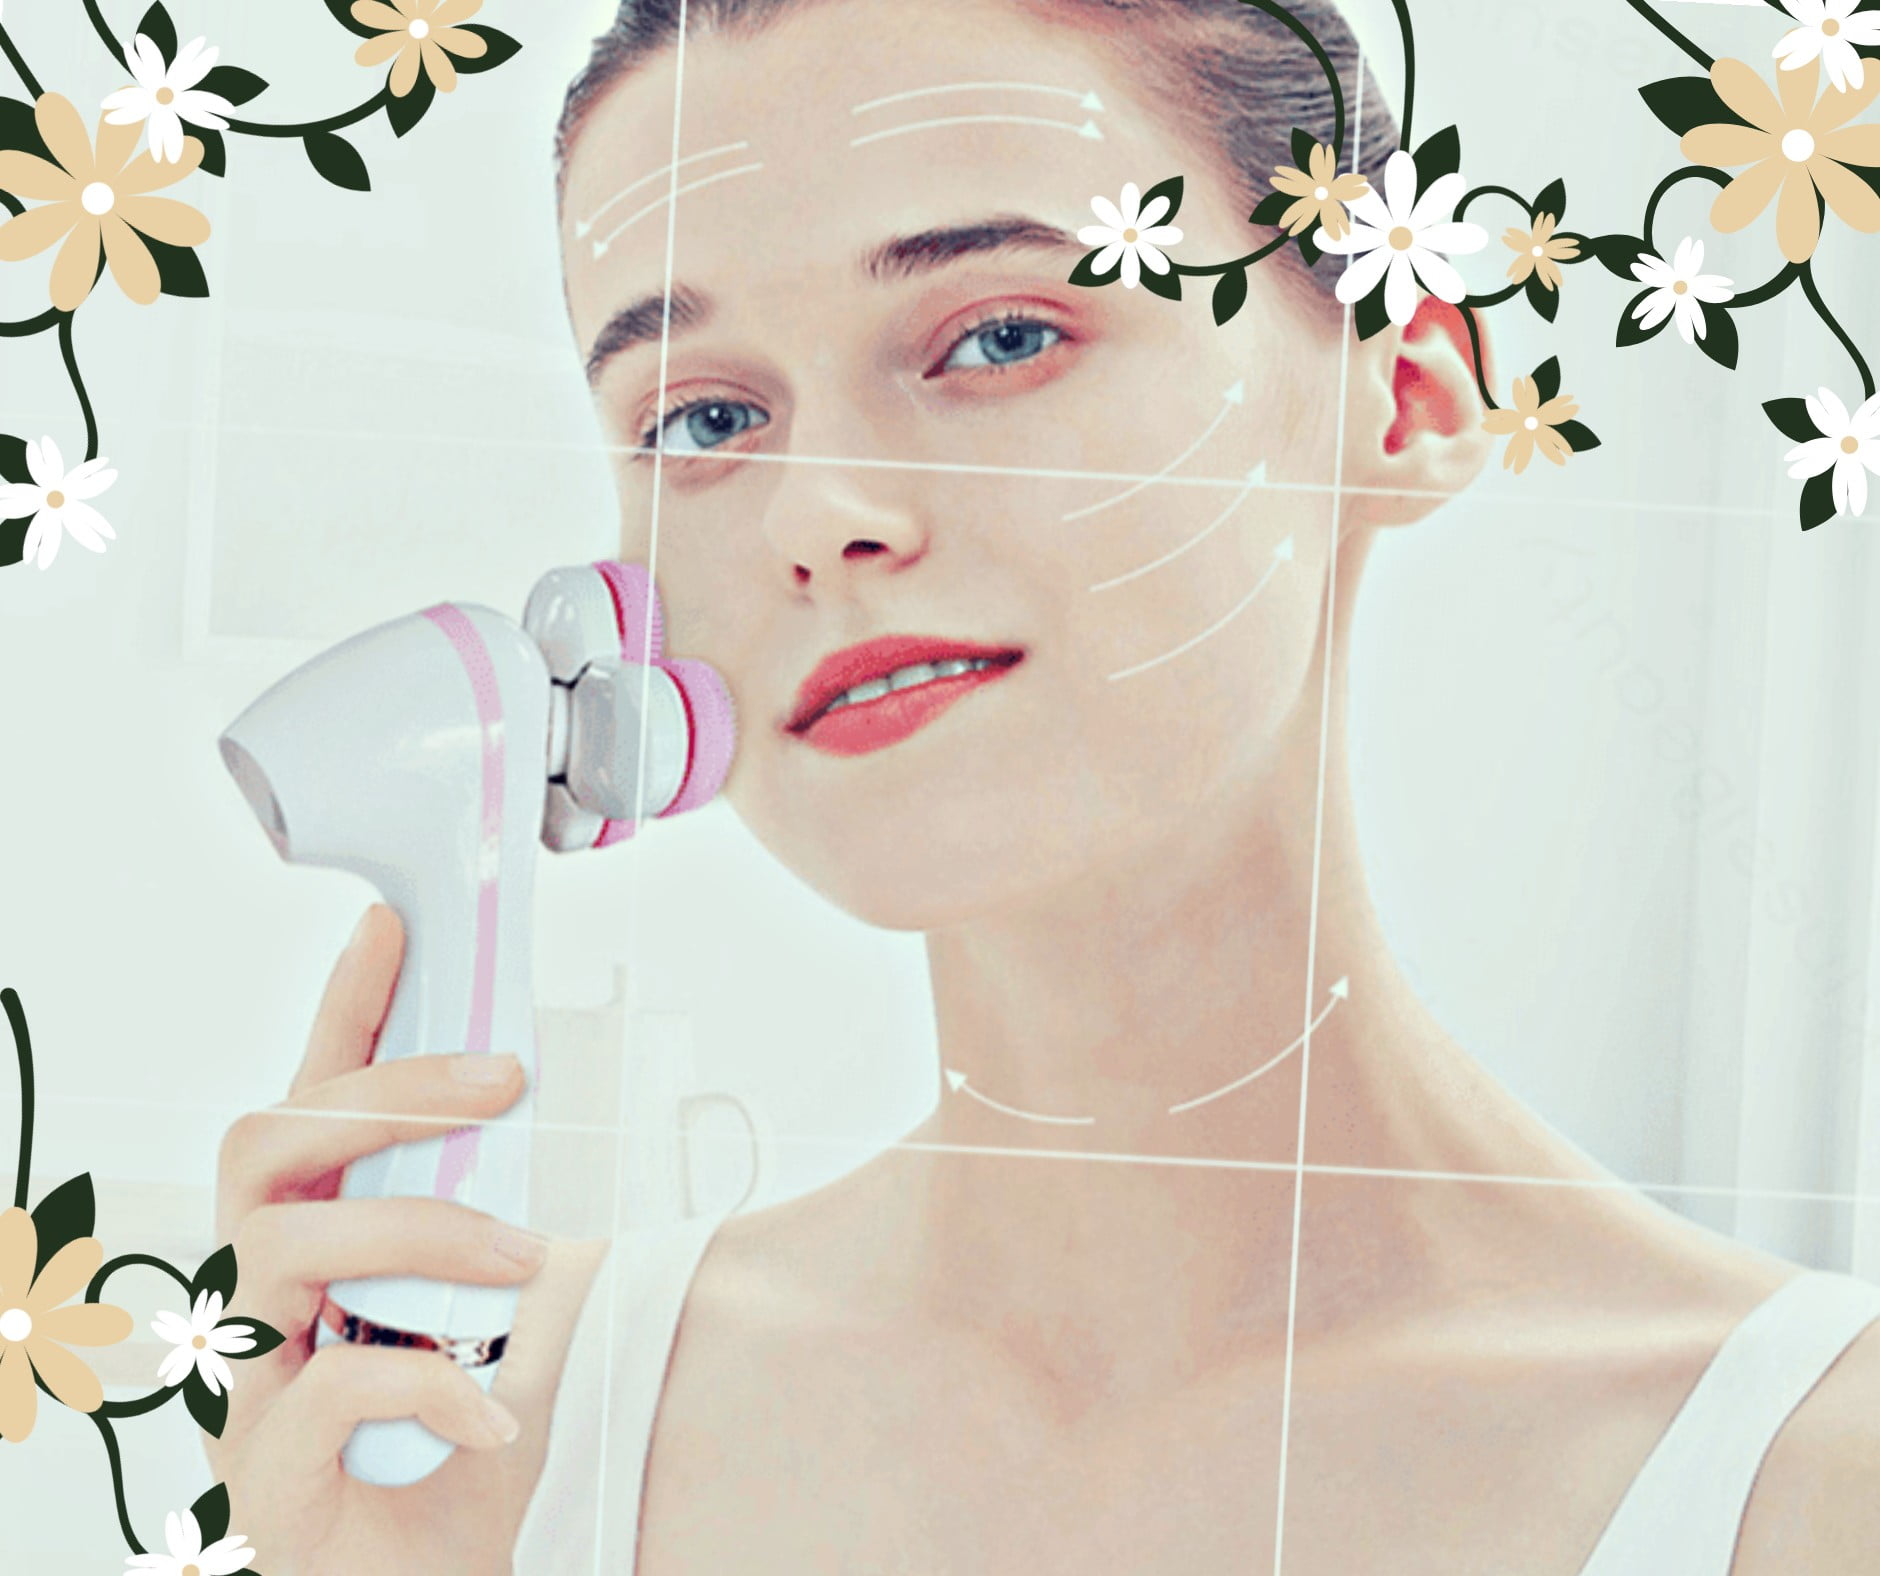 3 Best Facial Cleanser & Scrub Brushes for a Happy Face